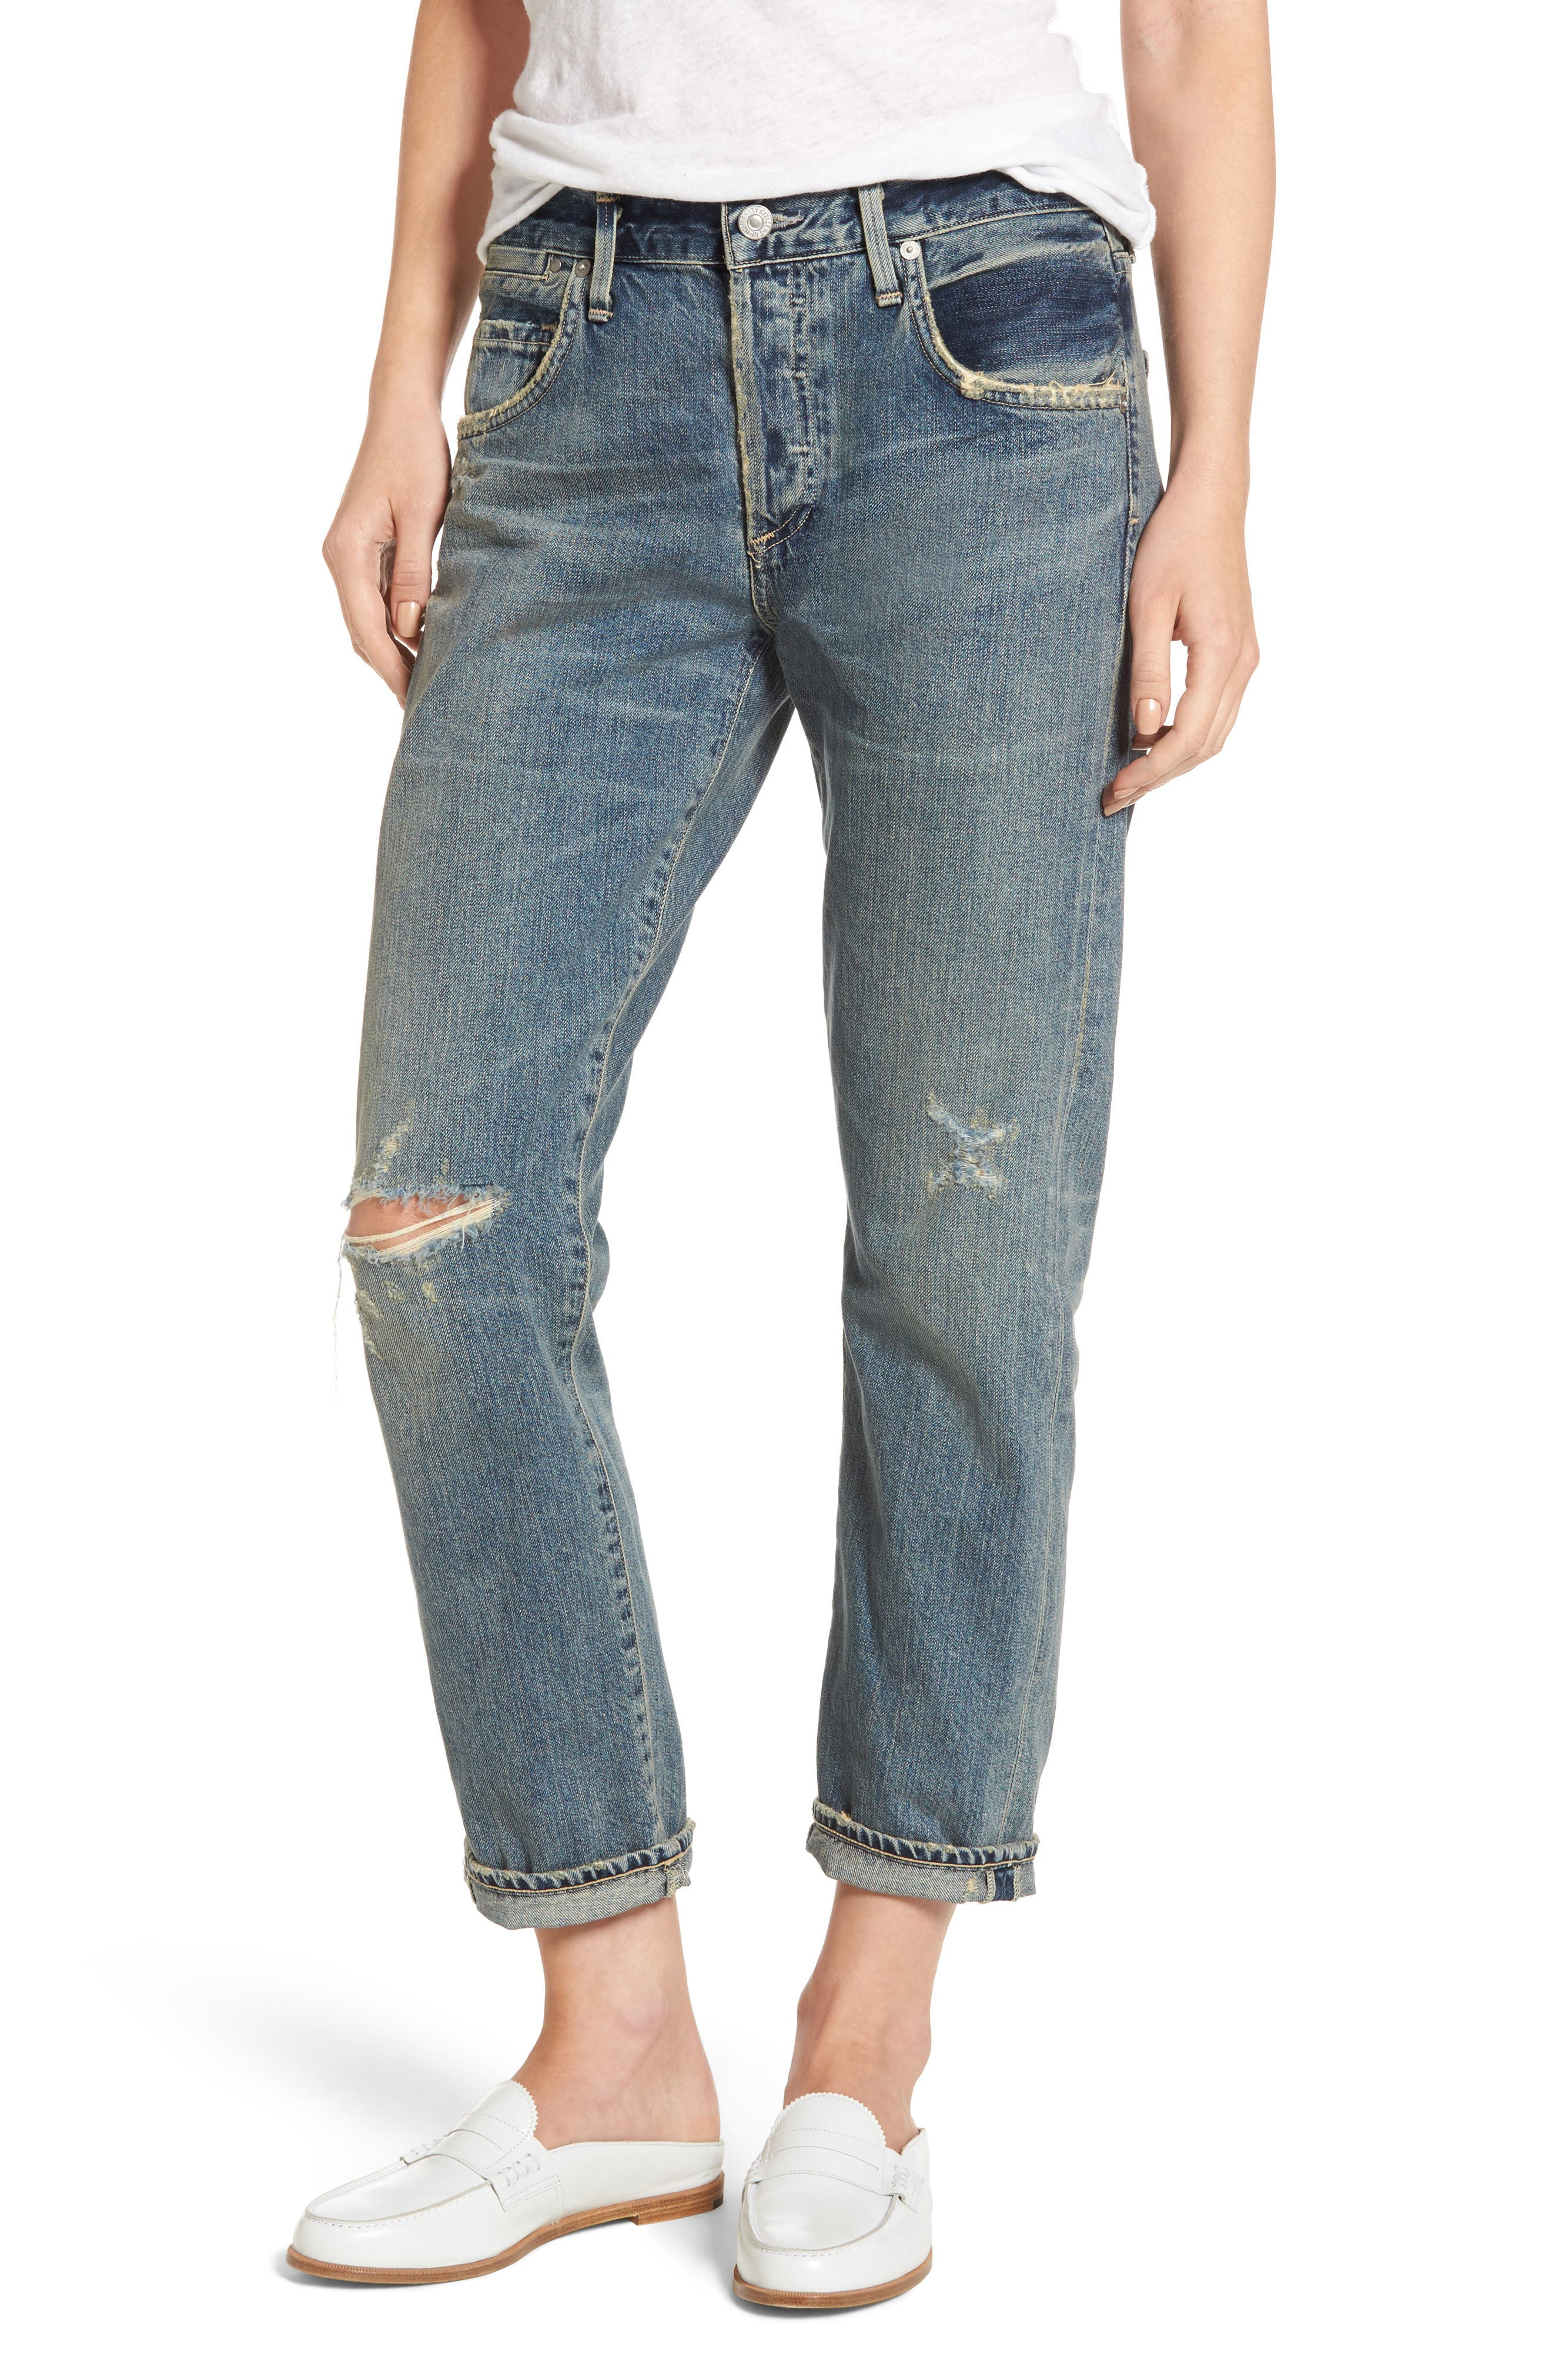 Alternate Image 1 Selected - Citizens of Humanity Emerson Ripped Slim Boyfriend Jeans (Norlander)